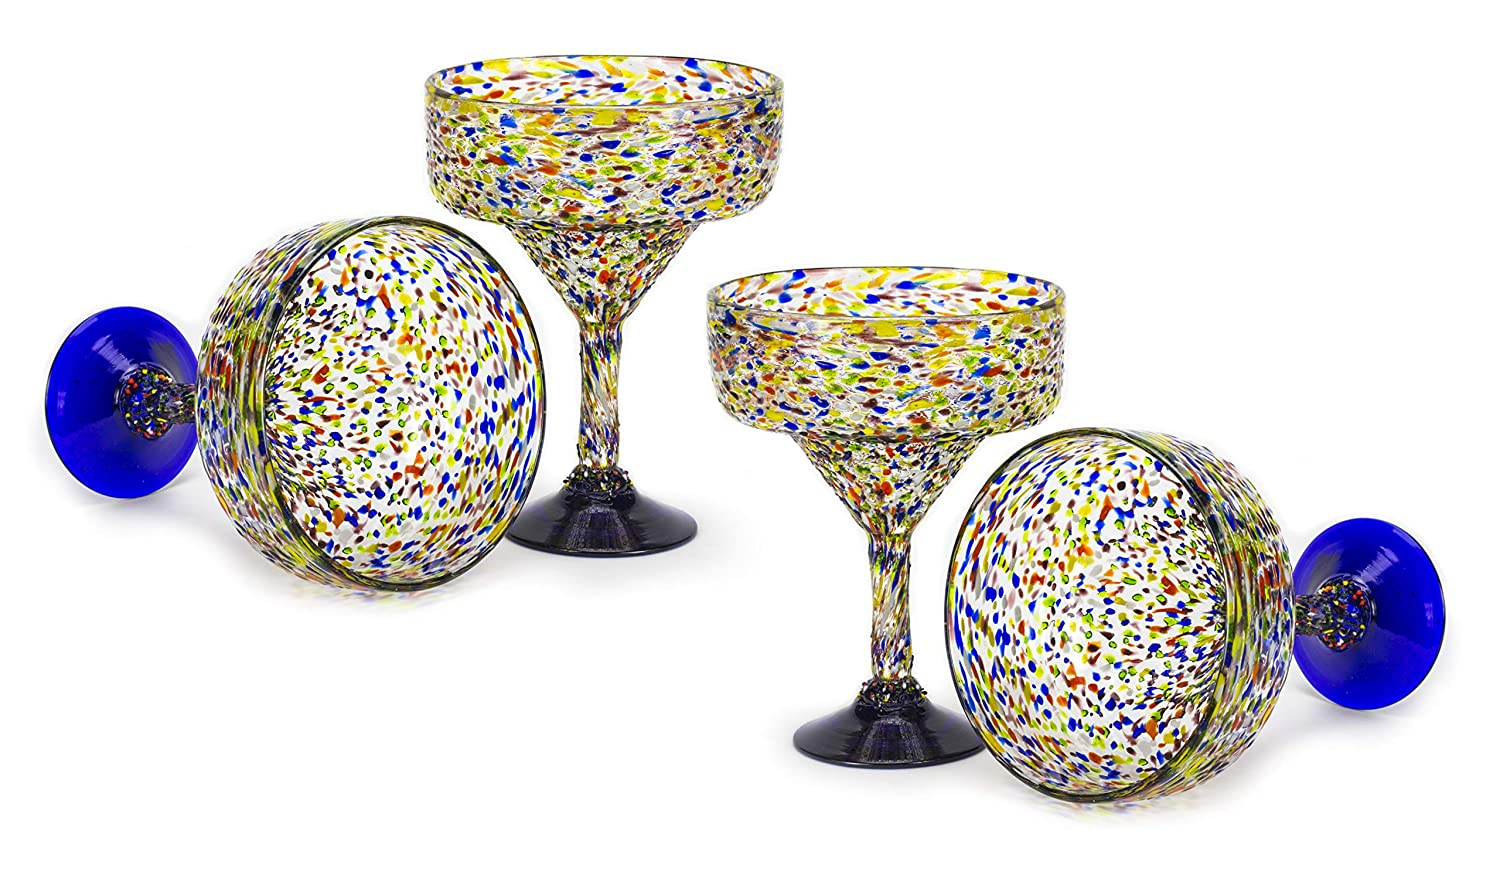 MEXART Artisan Crafted Hand Blown Confetti Multicolor Margarita Glass Recycled Glass, 16 oz. 'Classic' (Set of 4)